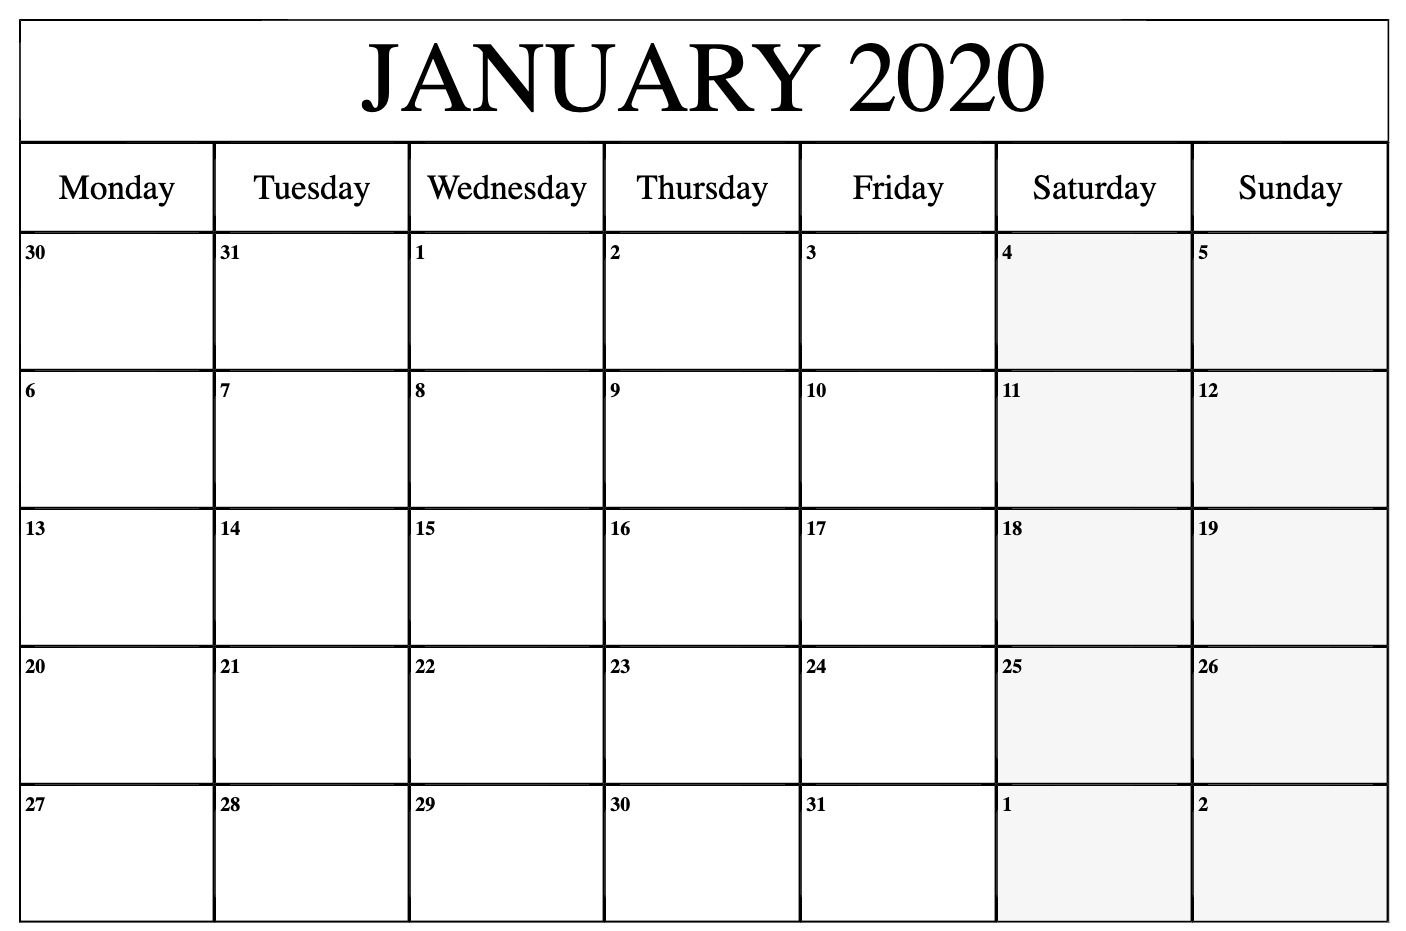 Free January 2020 Calendar Printable Template Pdf, Word